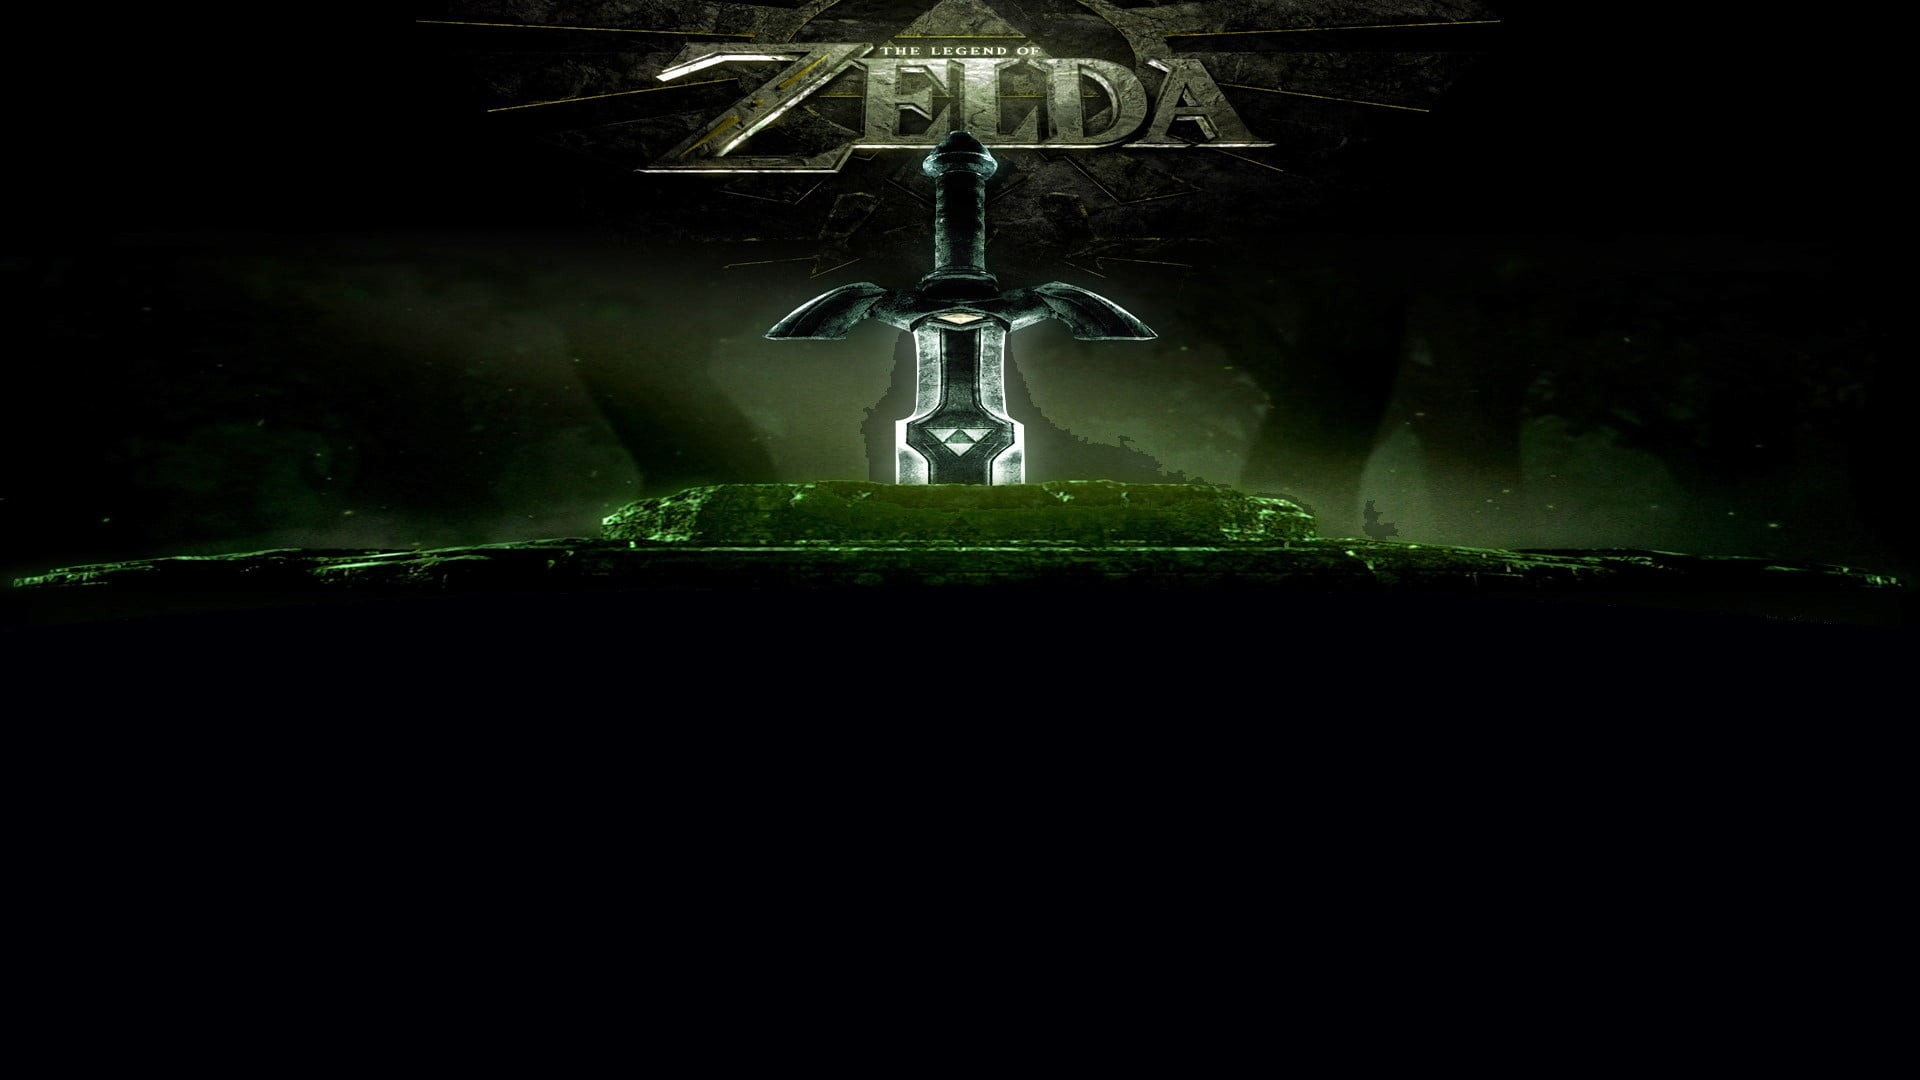 1920x1080 The Legend of Zelda wallpaper, The Legend of Zelda, video games, Master  Sword